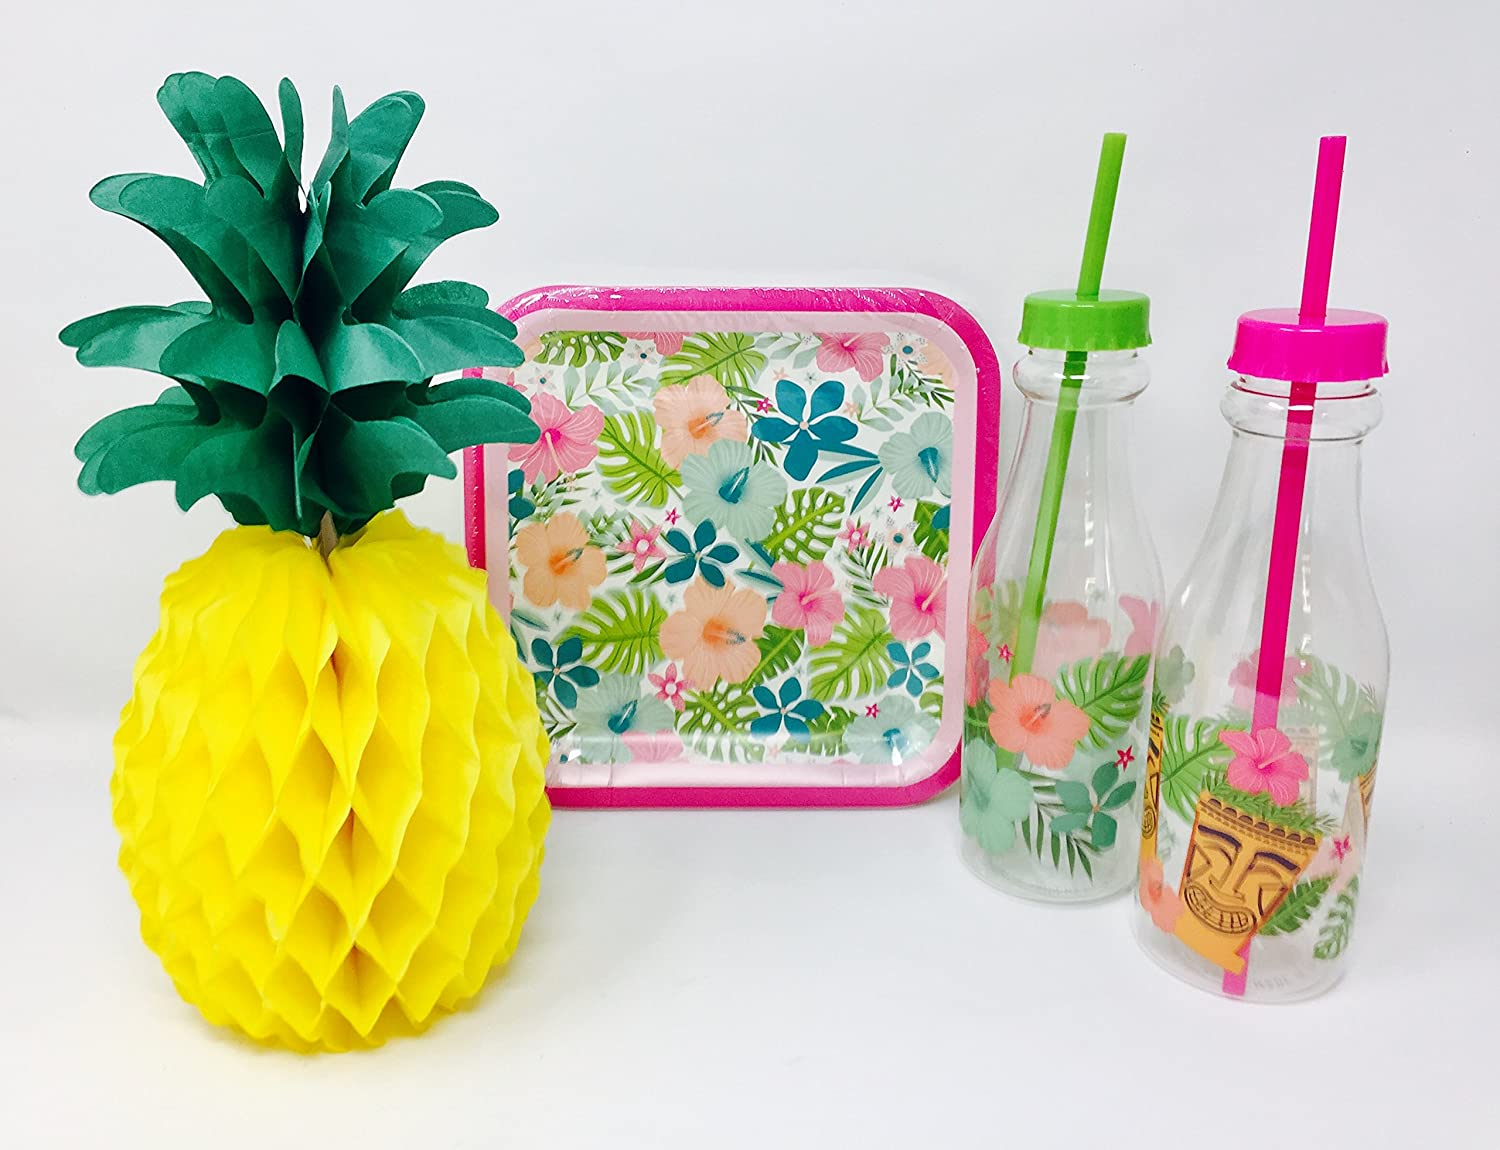 Tiki Hawaiian Party Plate Bundle with Plates, Table Decoration and 2 Tropical Luau Water Bottles